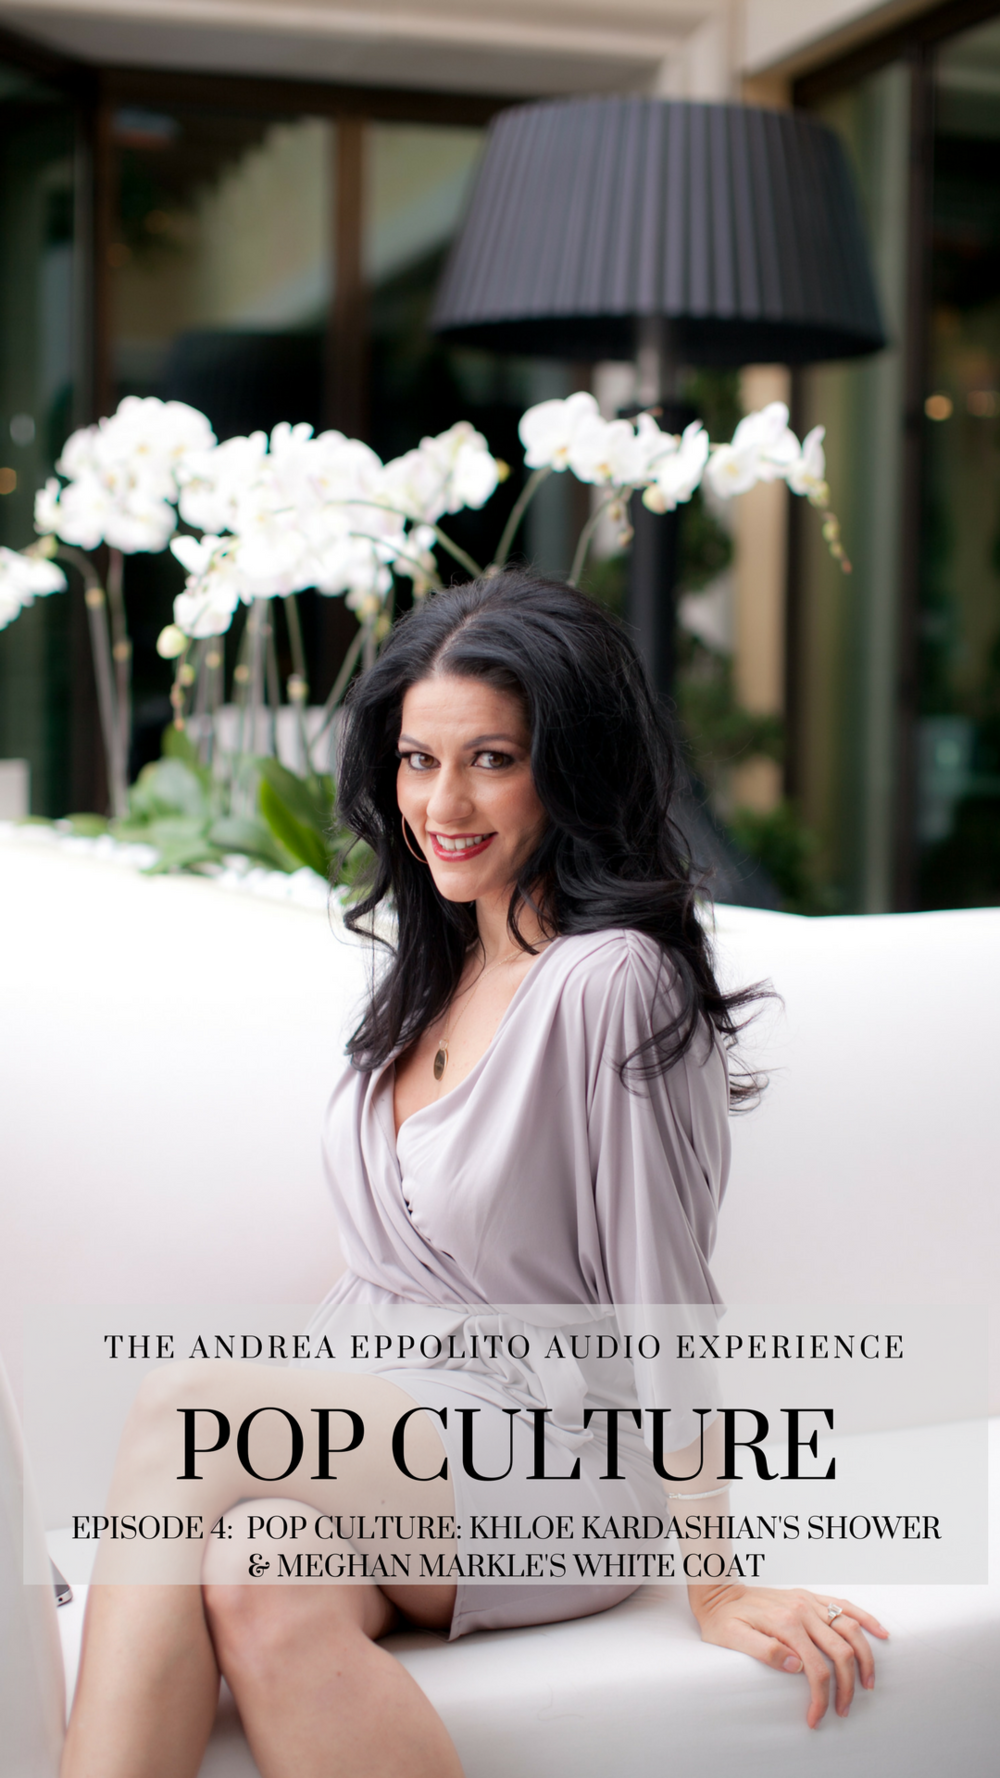 PODCAST.  Pop culture's influence on weddings.  Las Vegas Wedding Planning Podcast.  Andrea Eppolito hosts a podcast discussing life, luxury, and above all else...love.